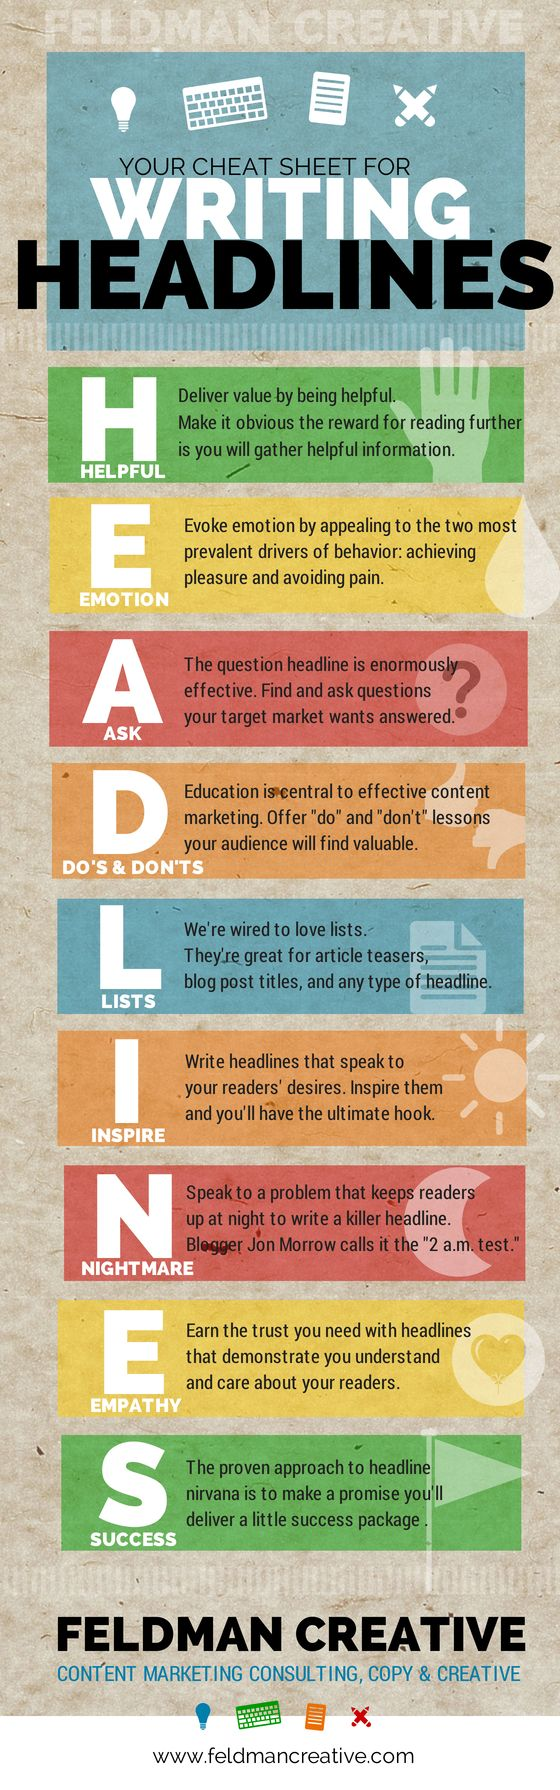 Thanks to @SusanFinnOnline for sharing this with me!  Nine Unforgettable Tips for Writing Headlines that Work | Social Media Today